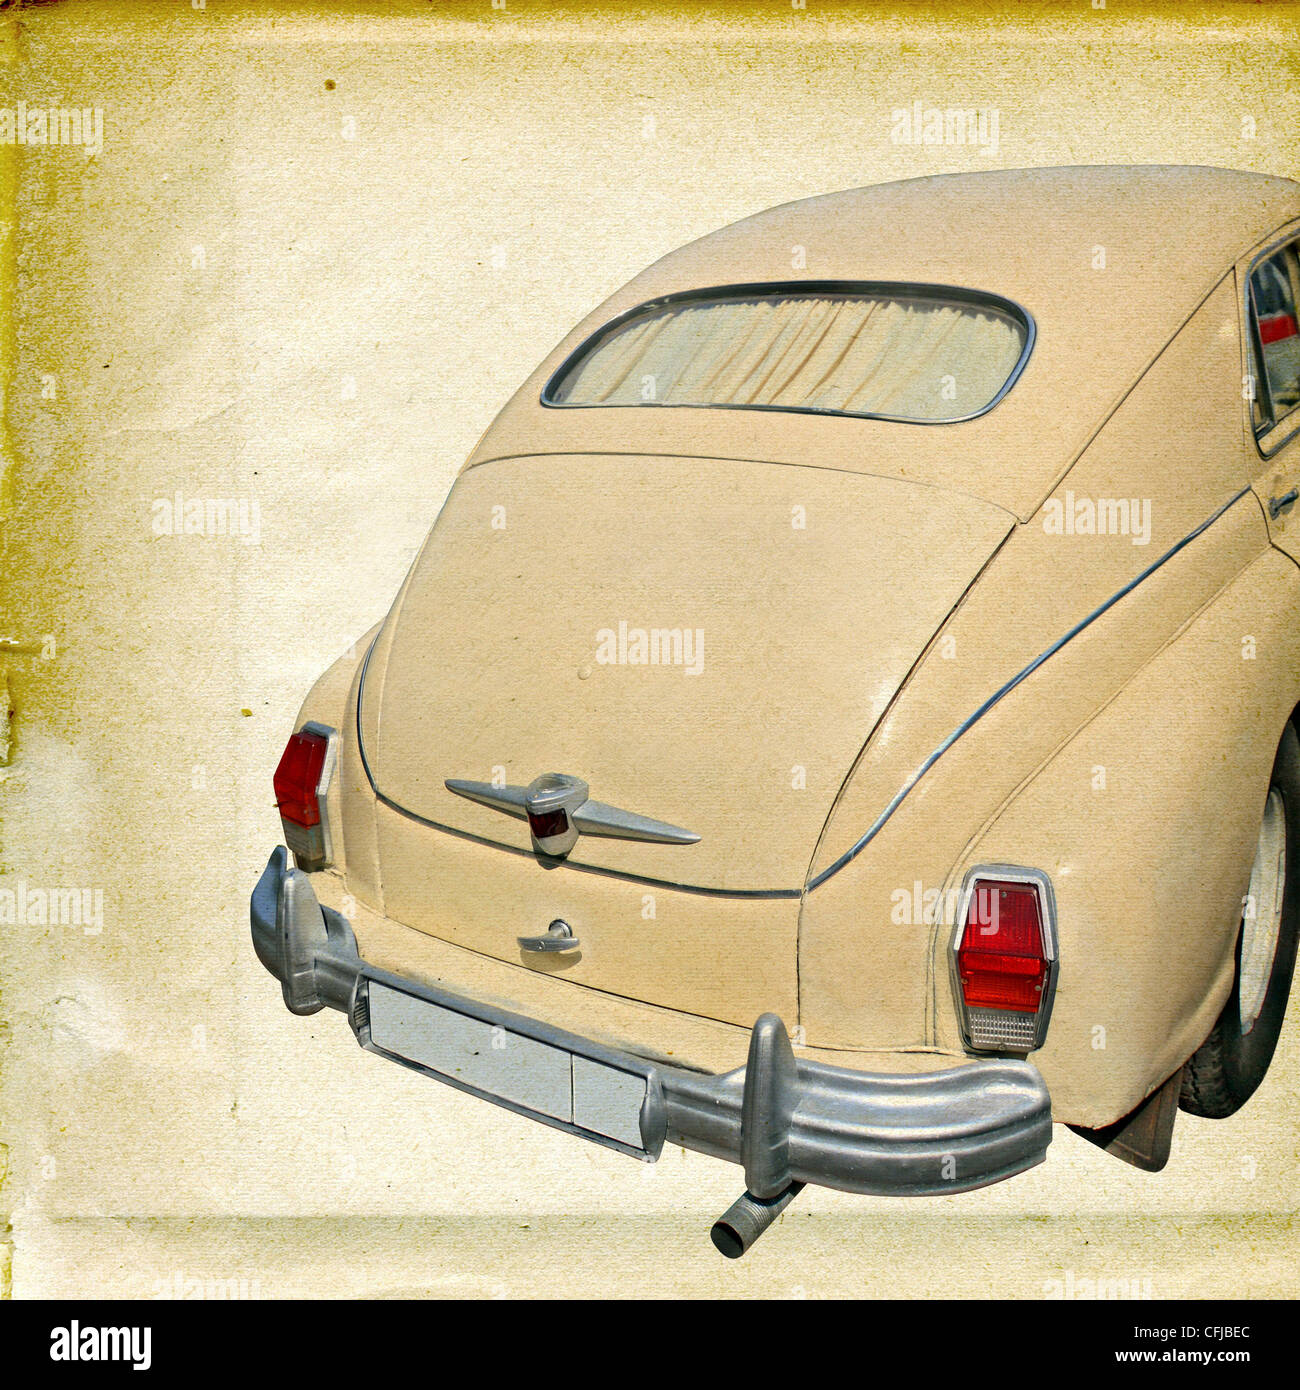 Crumpled Paper Car Stock Photos Images Volvo Pv444 Wiring Diagram Vintage Electrical Texture Of The Old Image